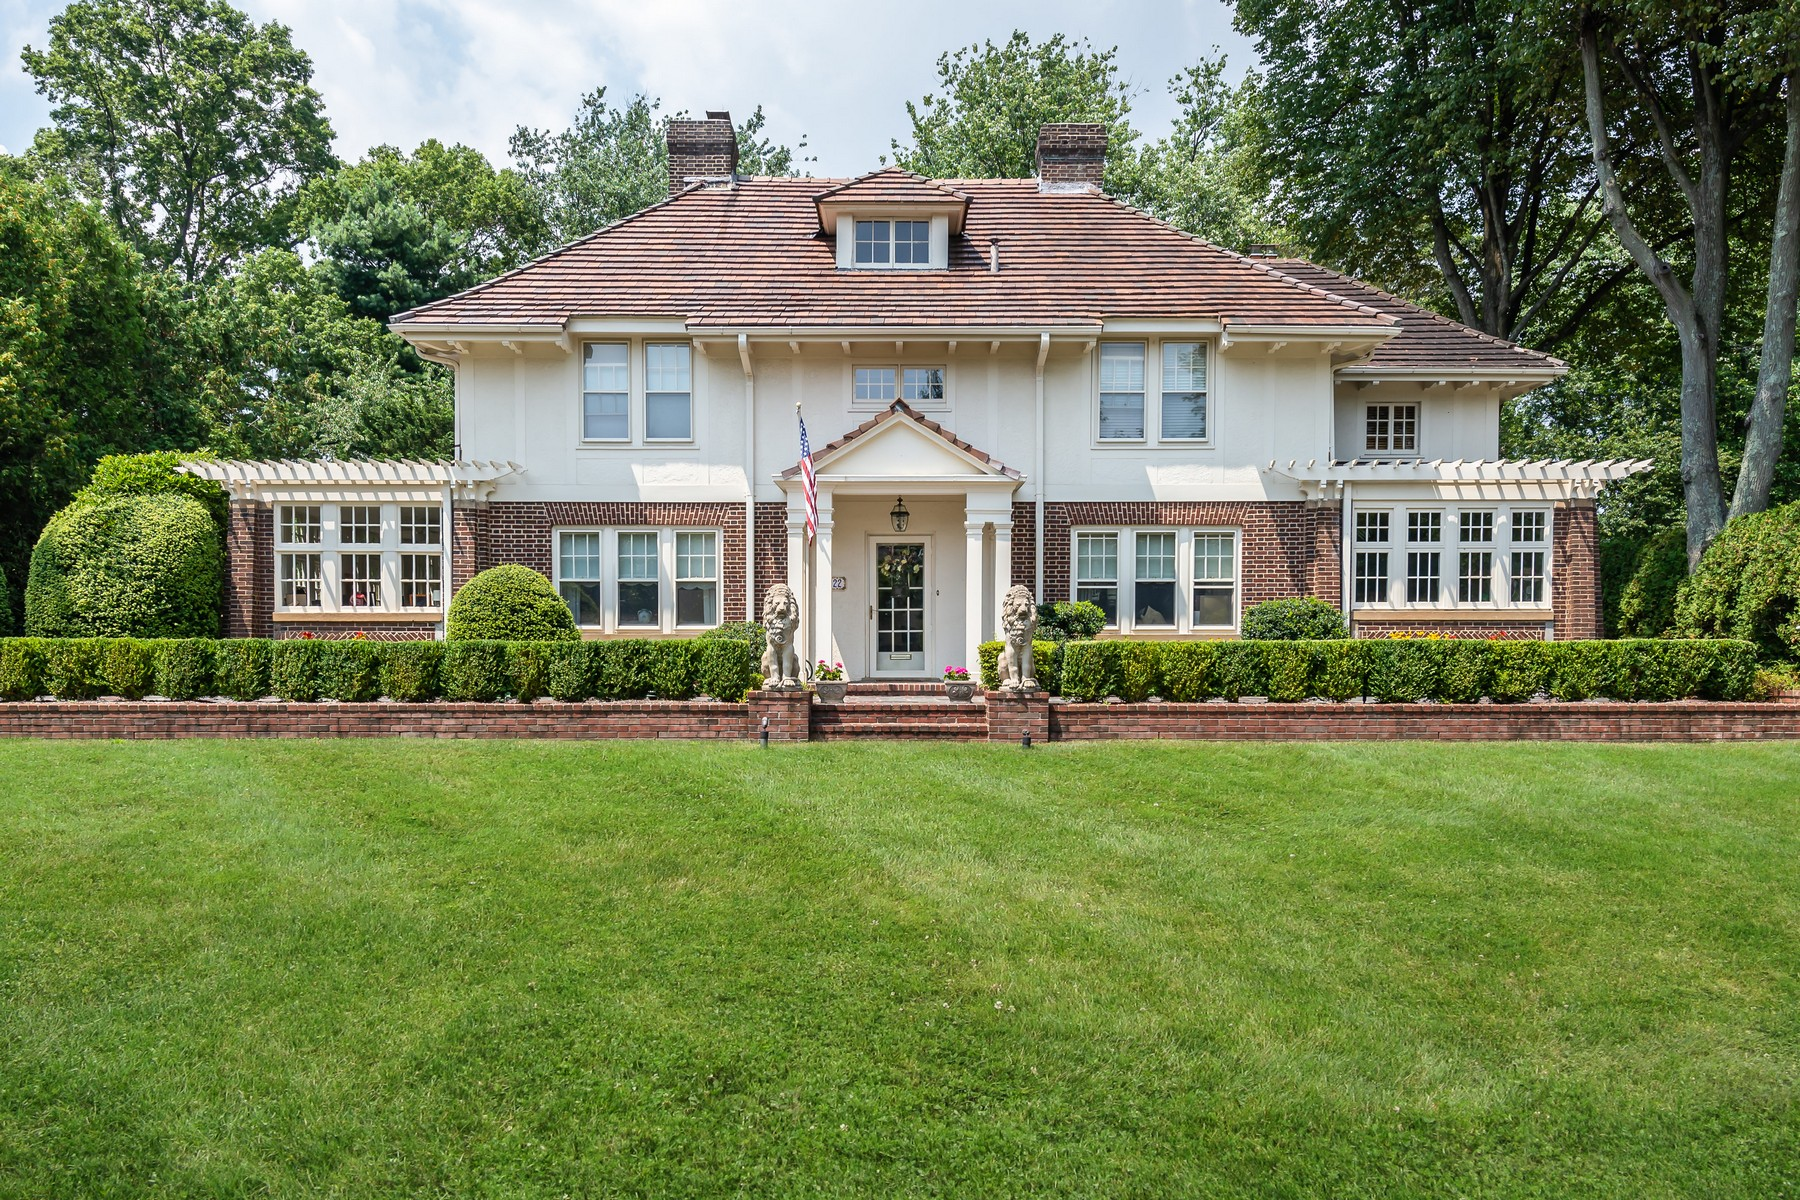 Single Family Homes for Sale at Garden City 22 Westbury Rd Garden City, New York 11530 United States